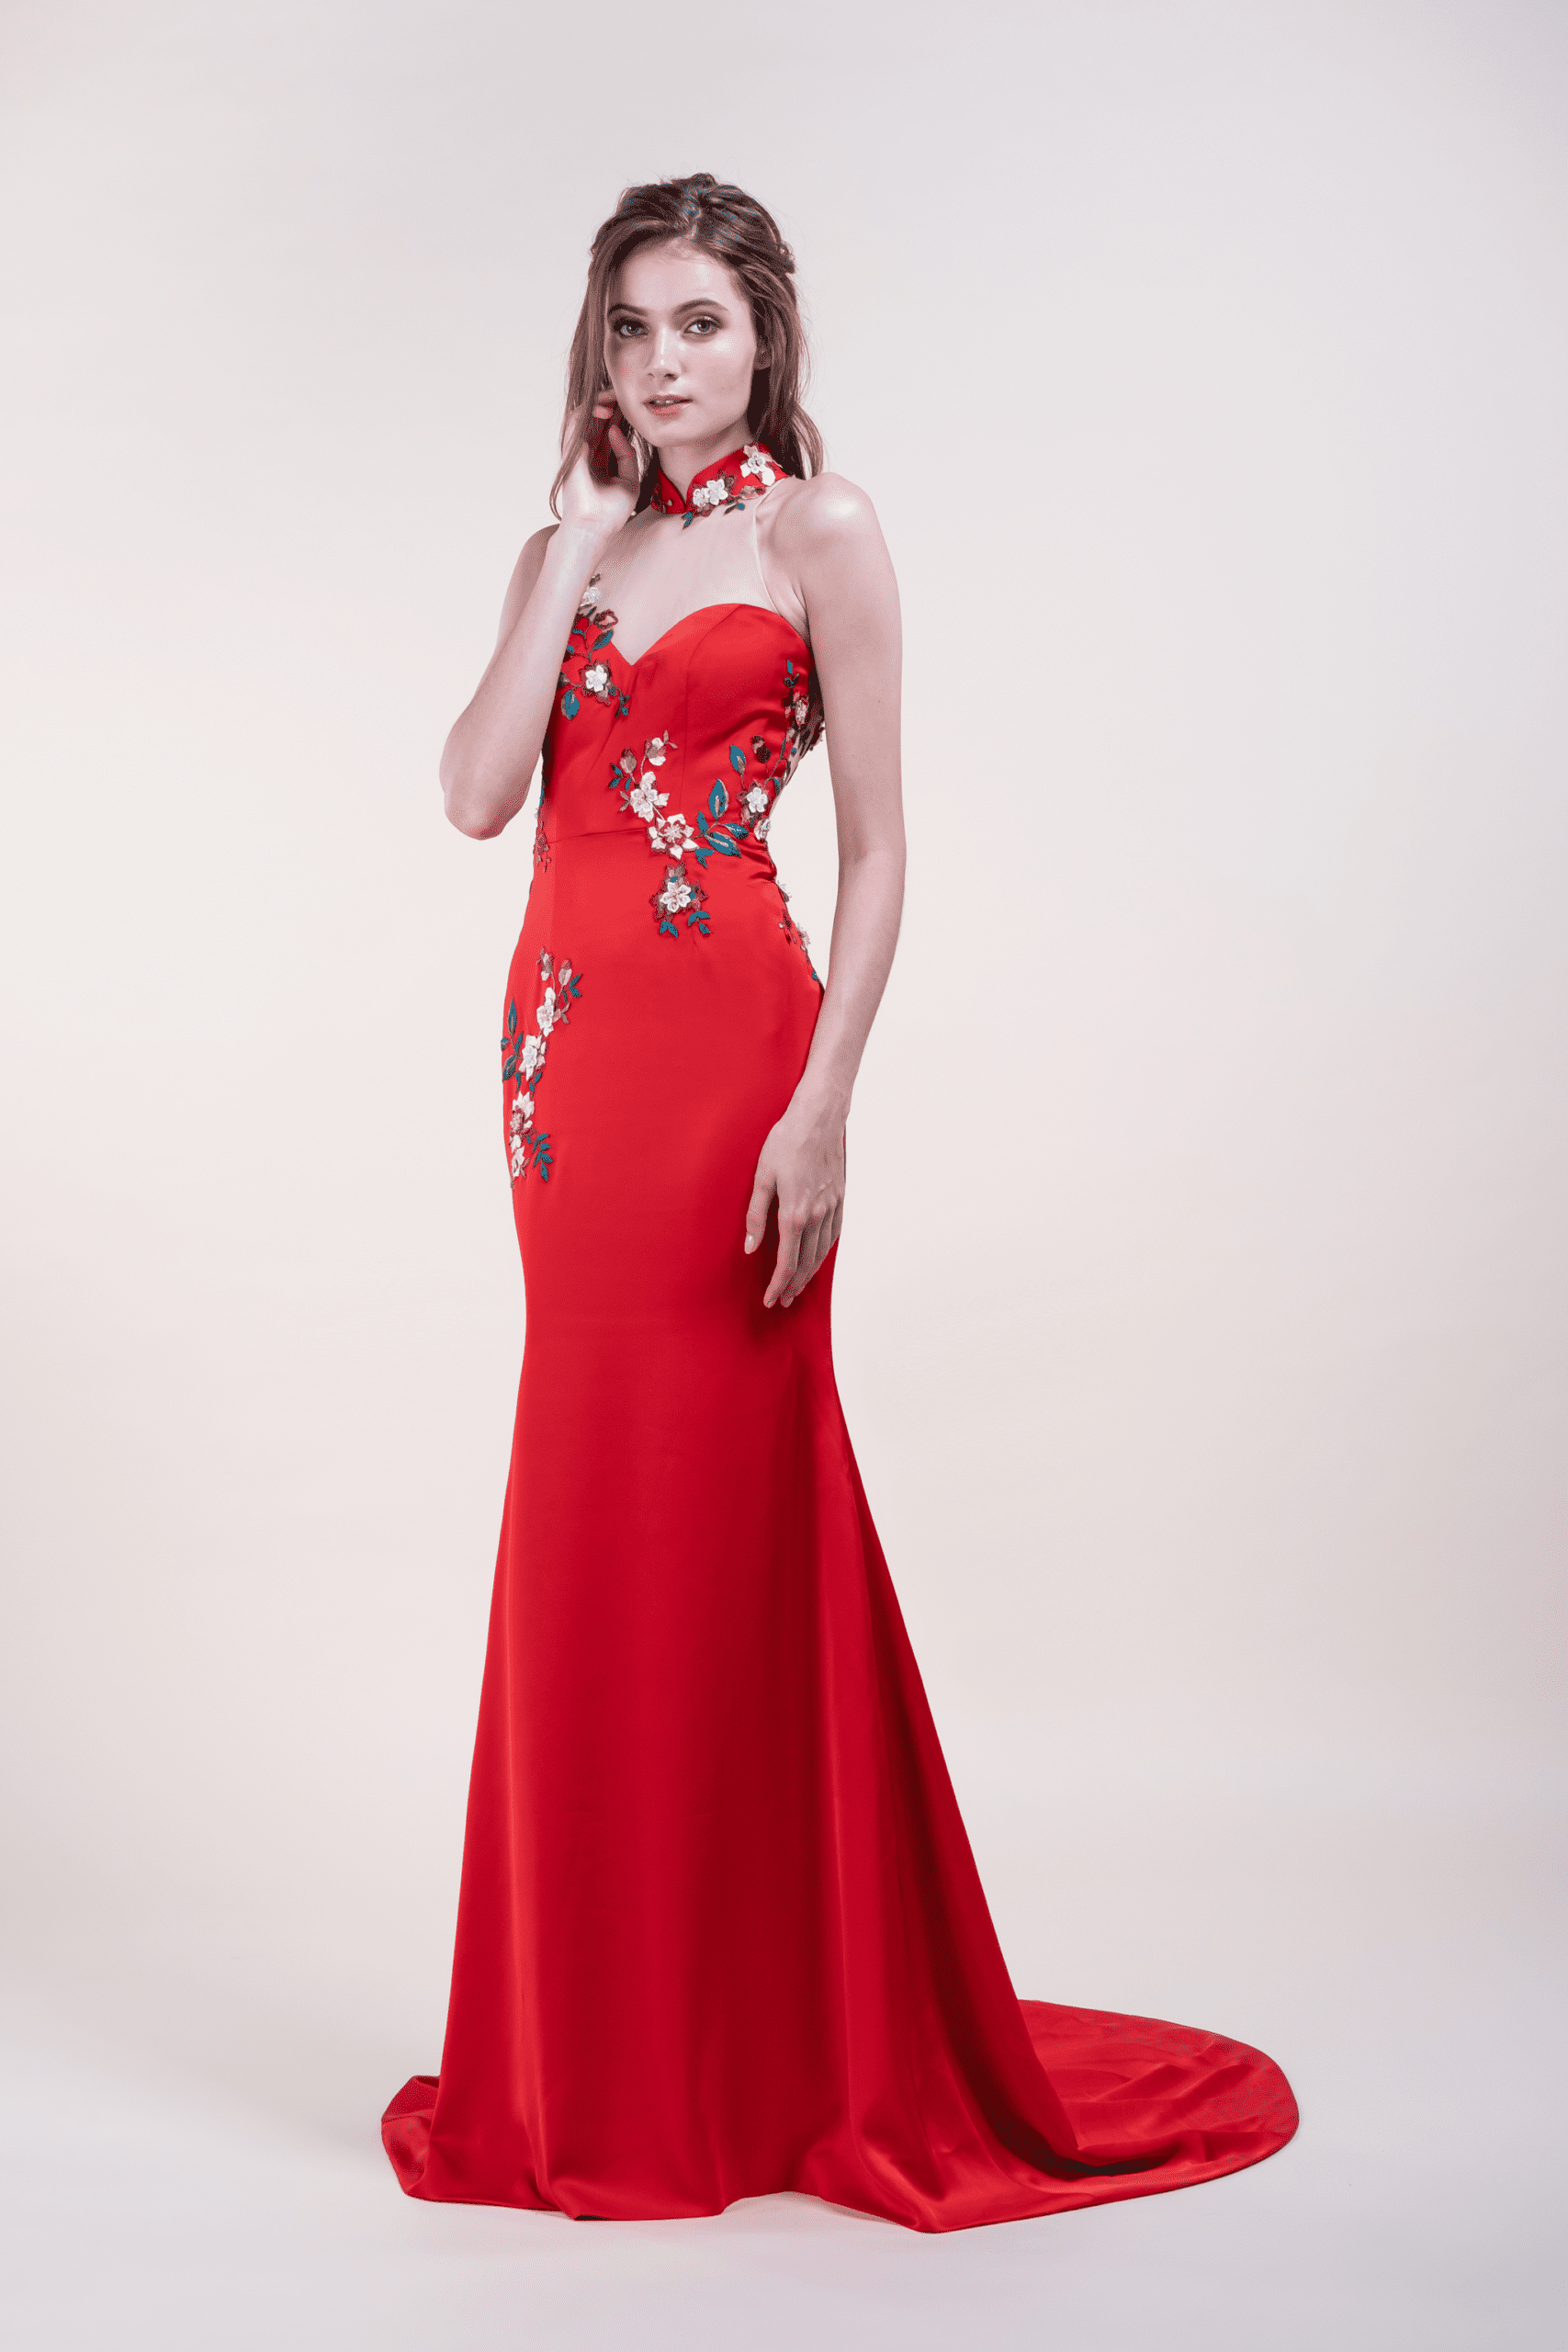 Kei-affordable-Wedding-Cheongsam-for-rent-in-Singapore